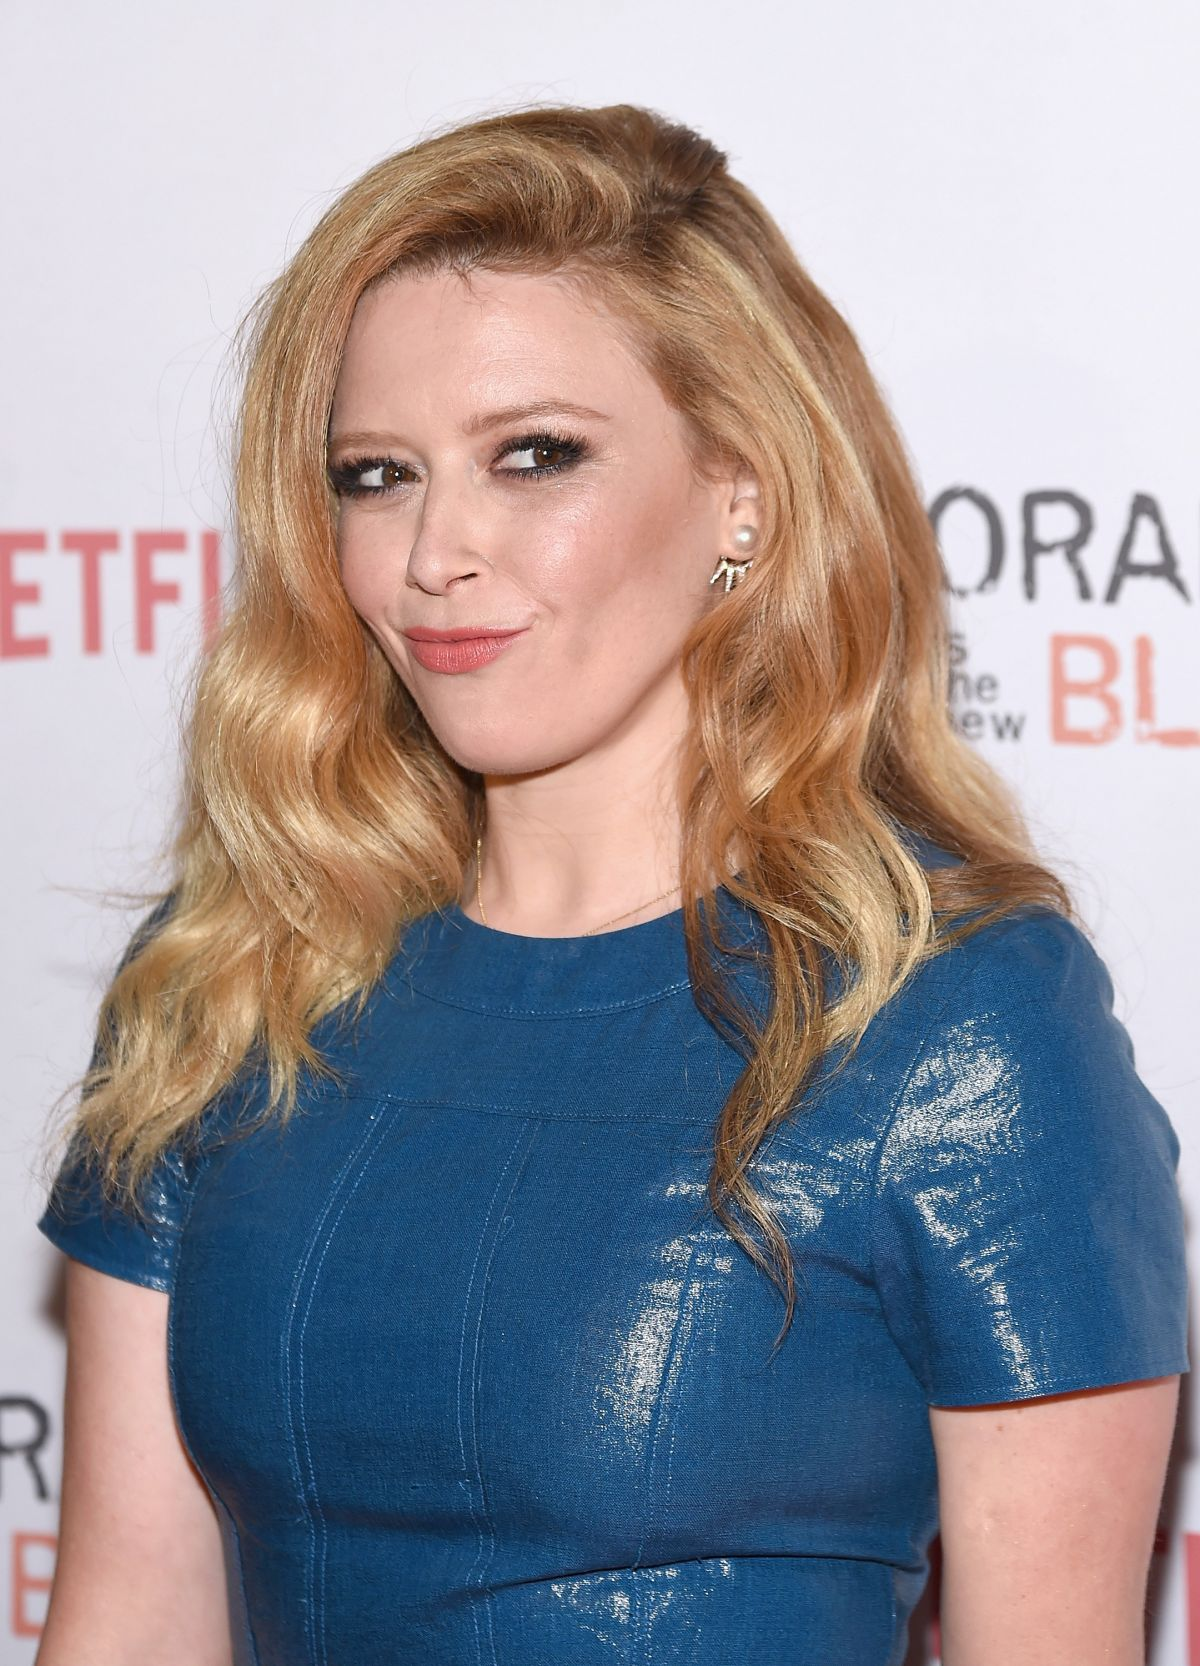 natasha-lyonne-at-orangecon-fan-event-in-new-york_1